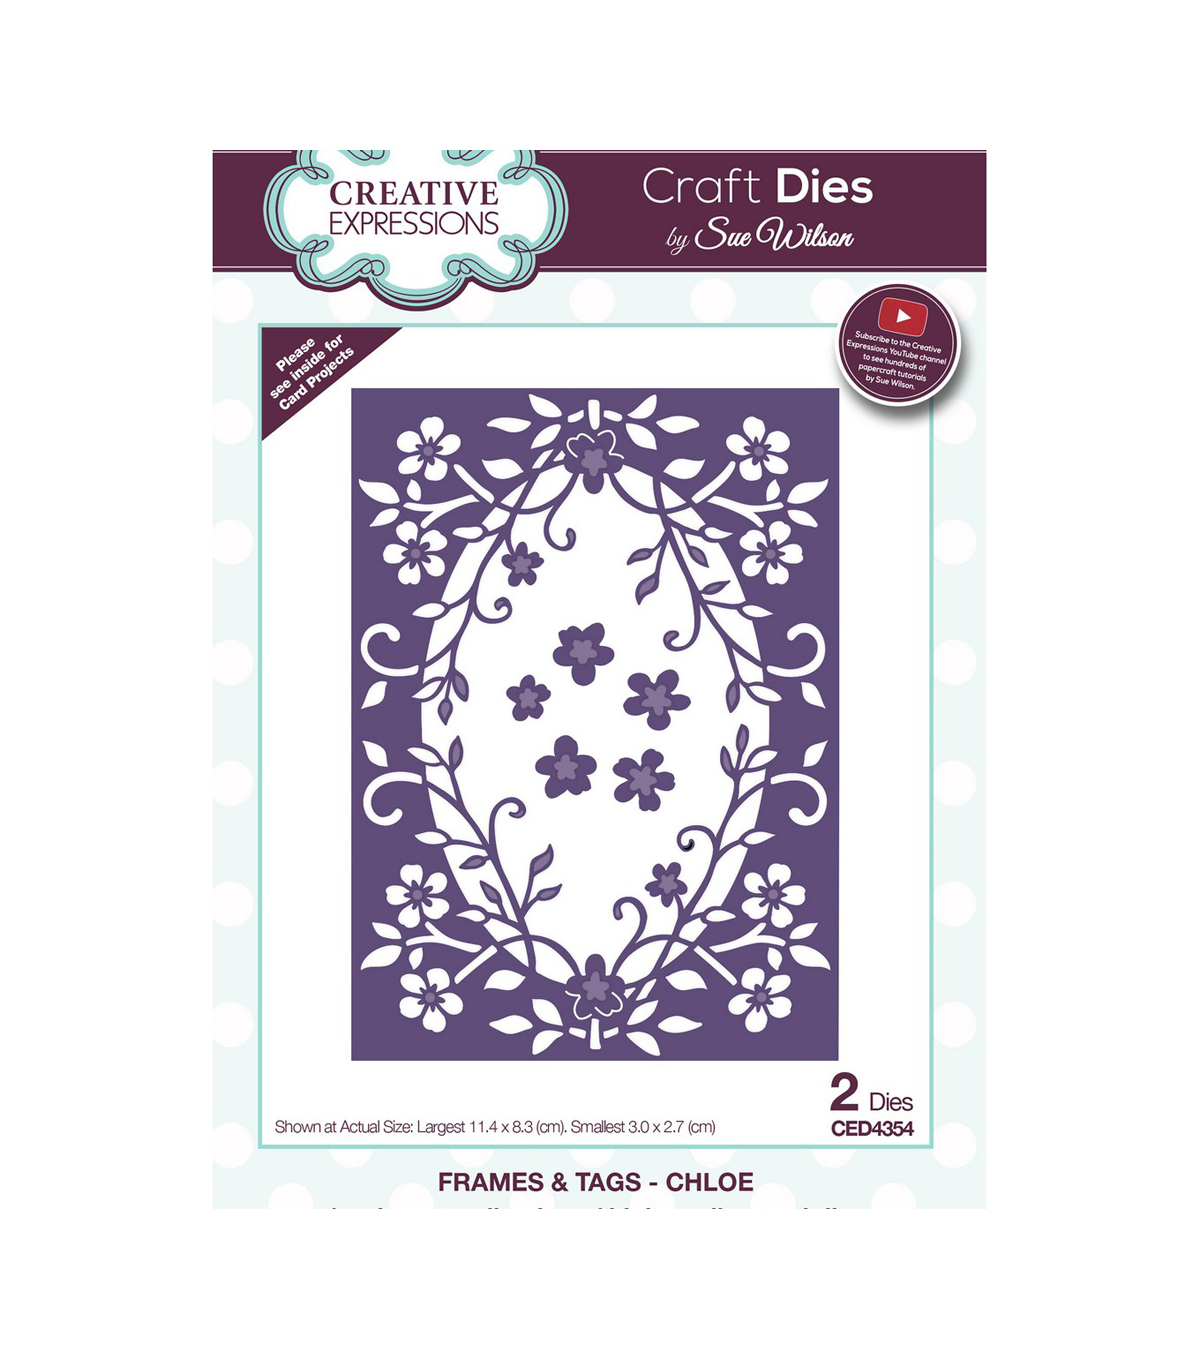 Creative Expressions Craft Dies By Sue Wilson-Chloe